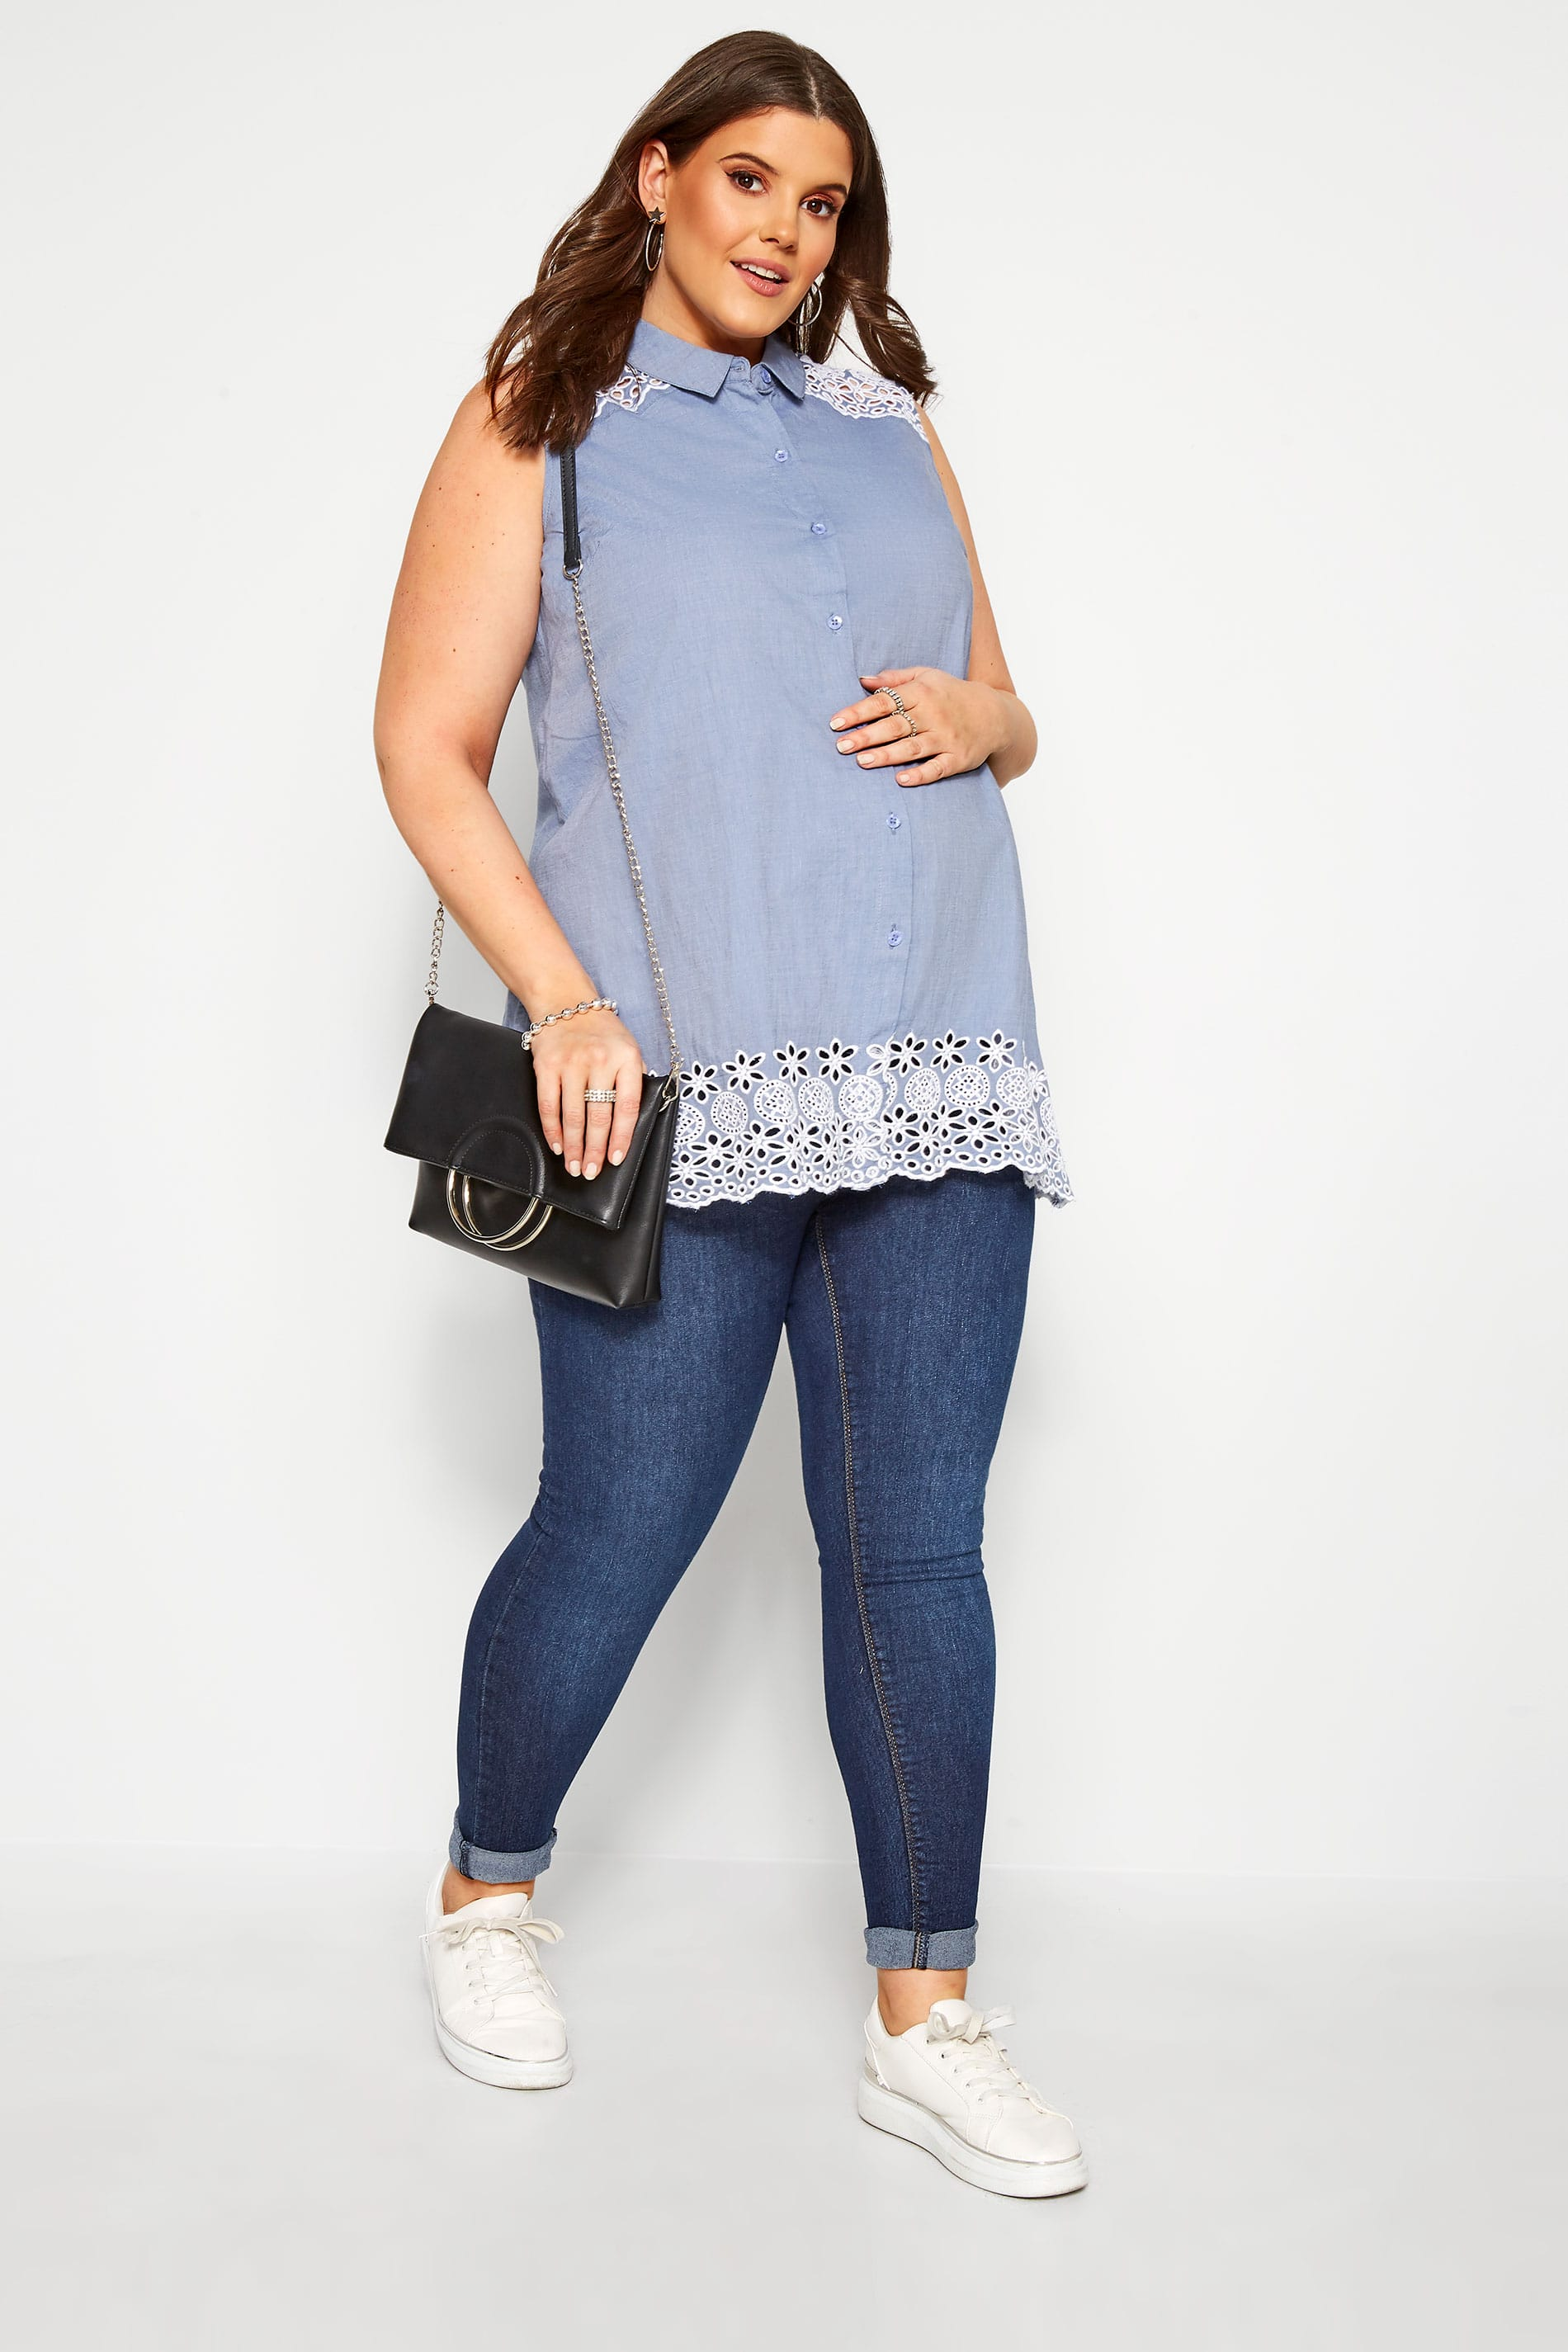 BUMP IT UP MATERNITY Besticktes Top - Blau